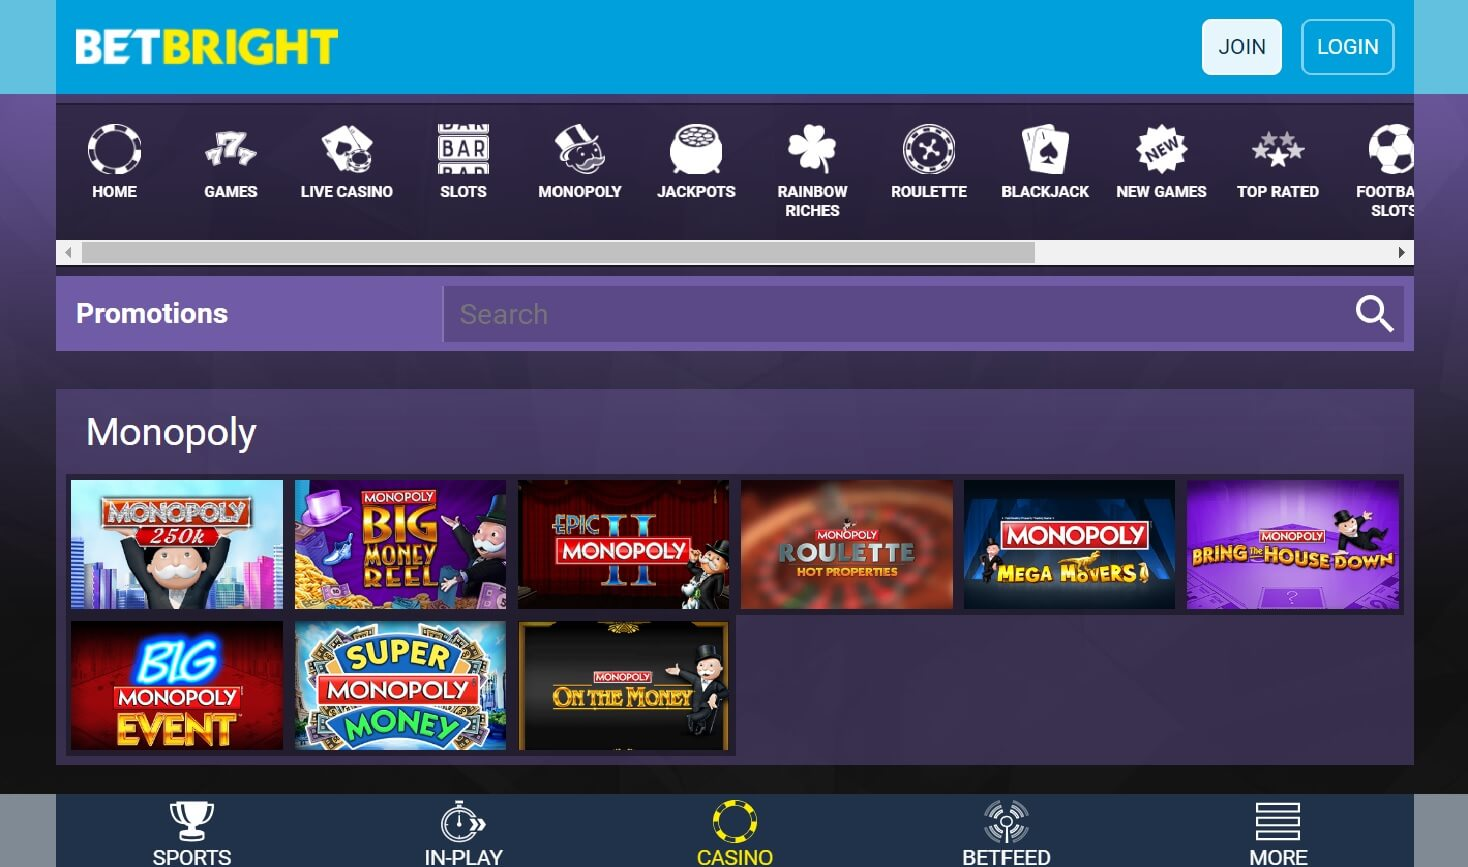 betbright casino games monopoly options